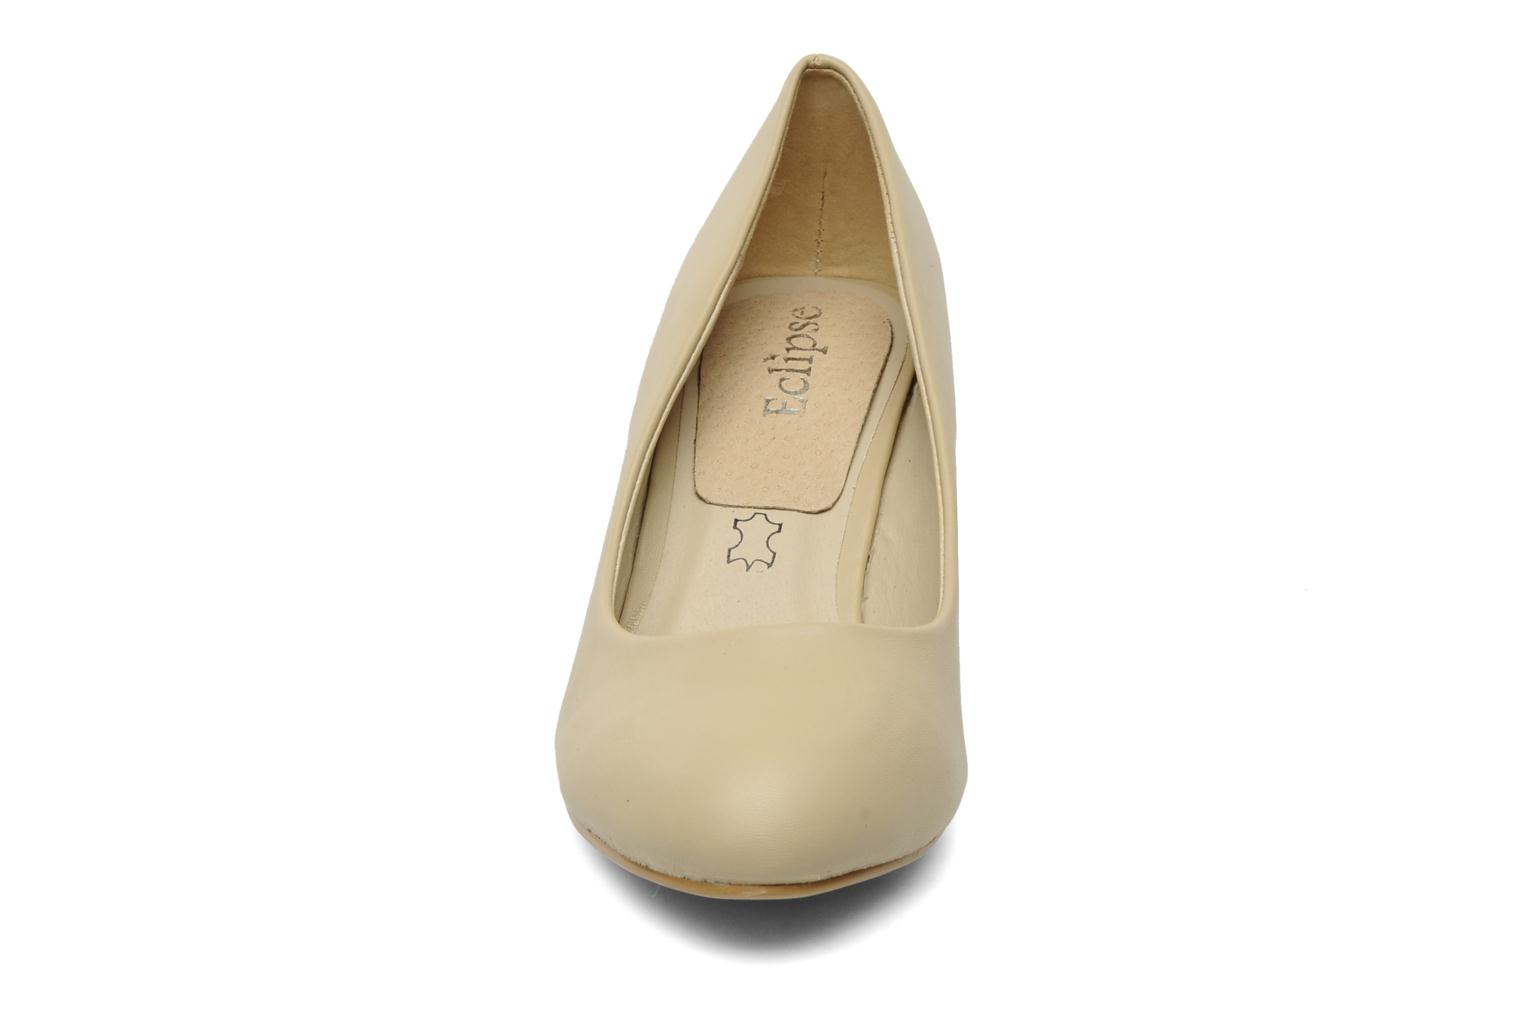 Pumps Eclipse Escarpin Moyen Talon Beige model